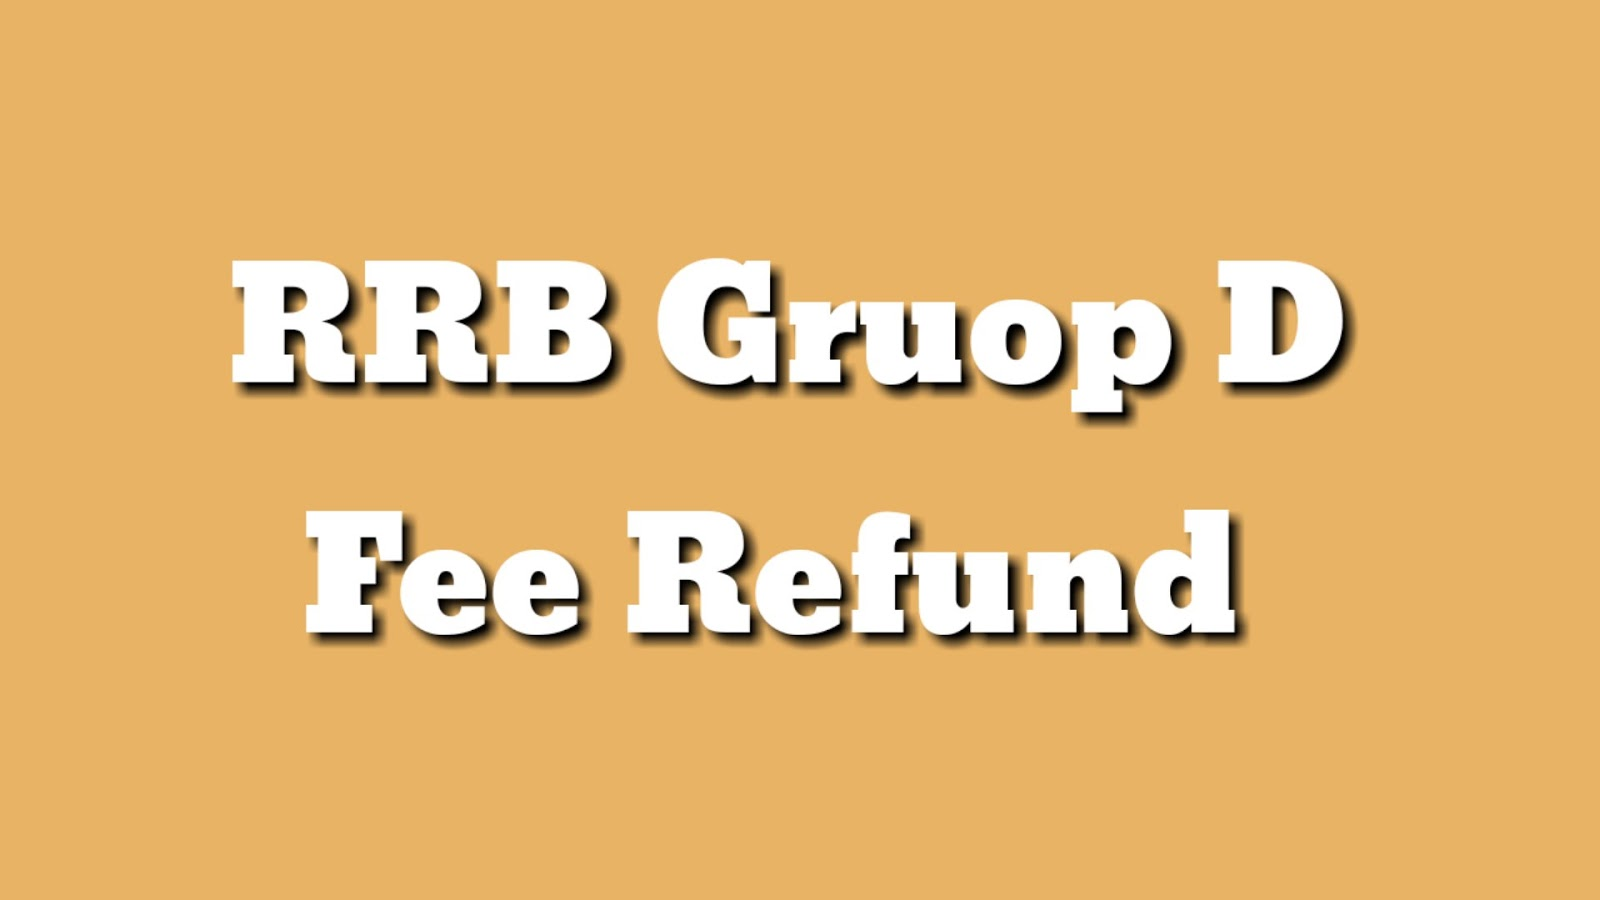 RRB Group D Exam fee refund